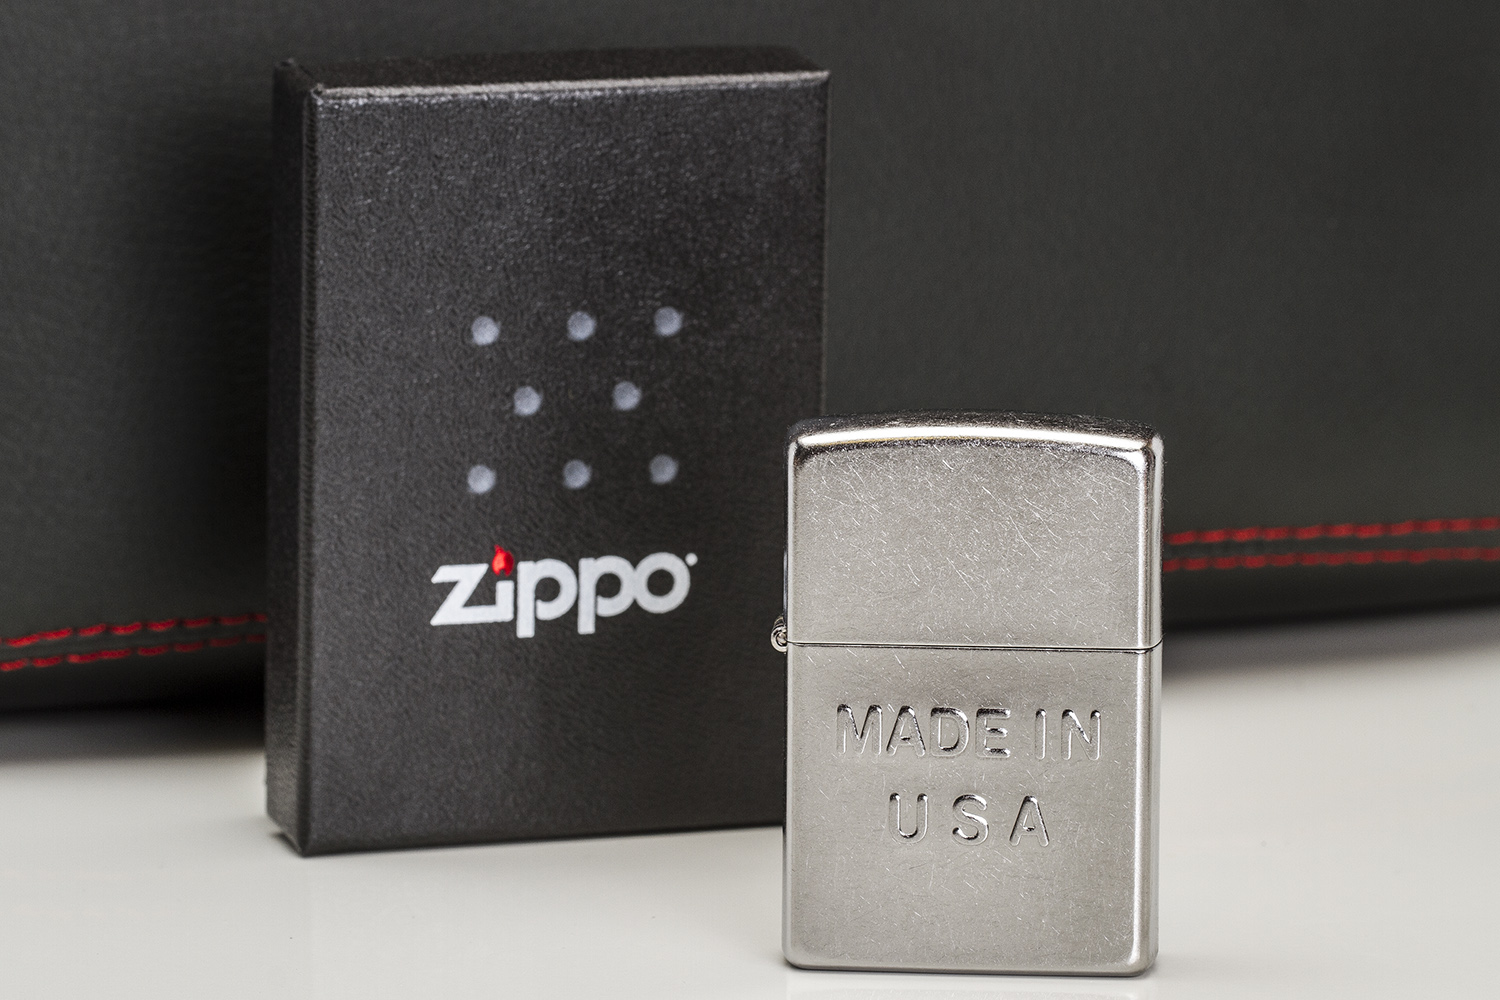 Massdropcom 47 Off Zippo Lighters 1049 And Up Redflagdeals Gold Ice